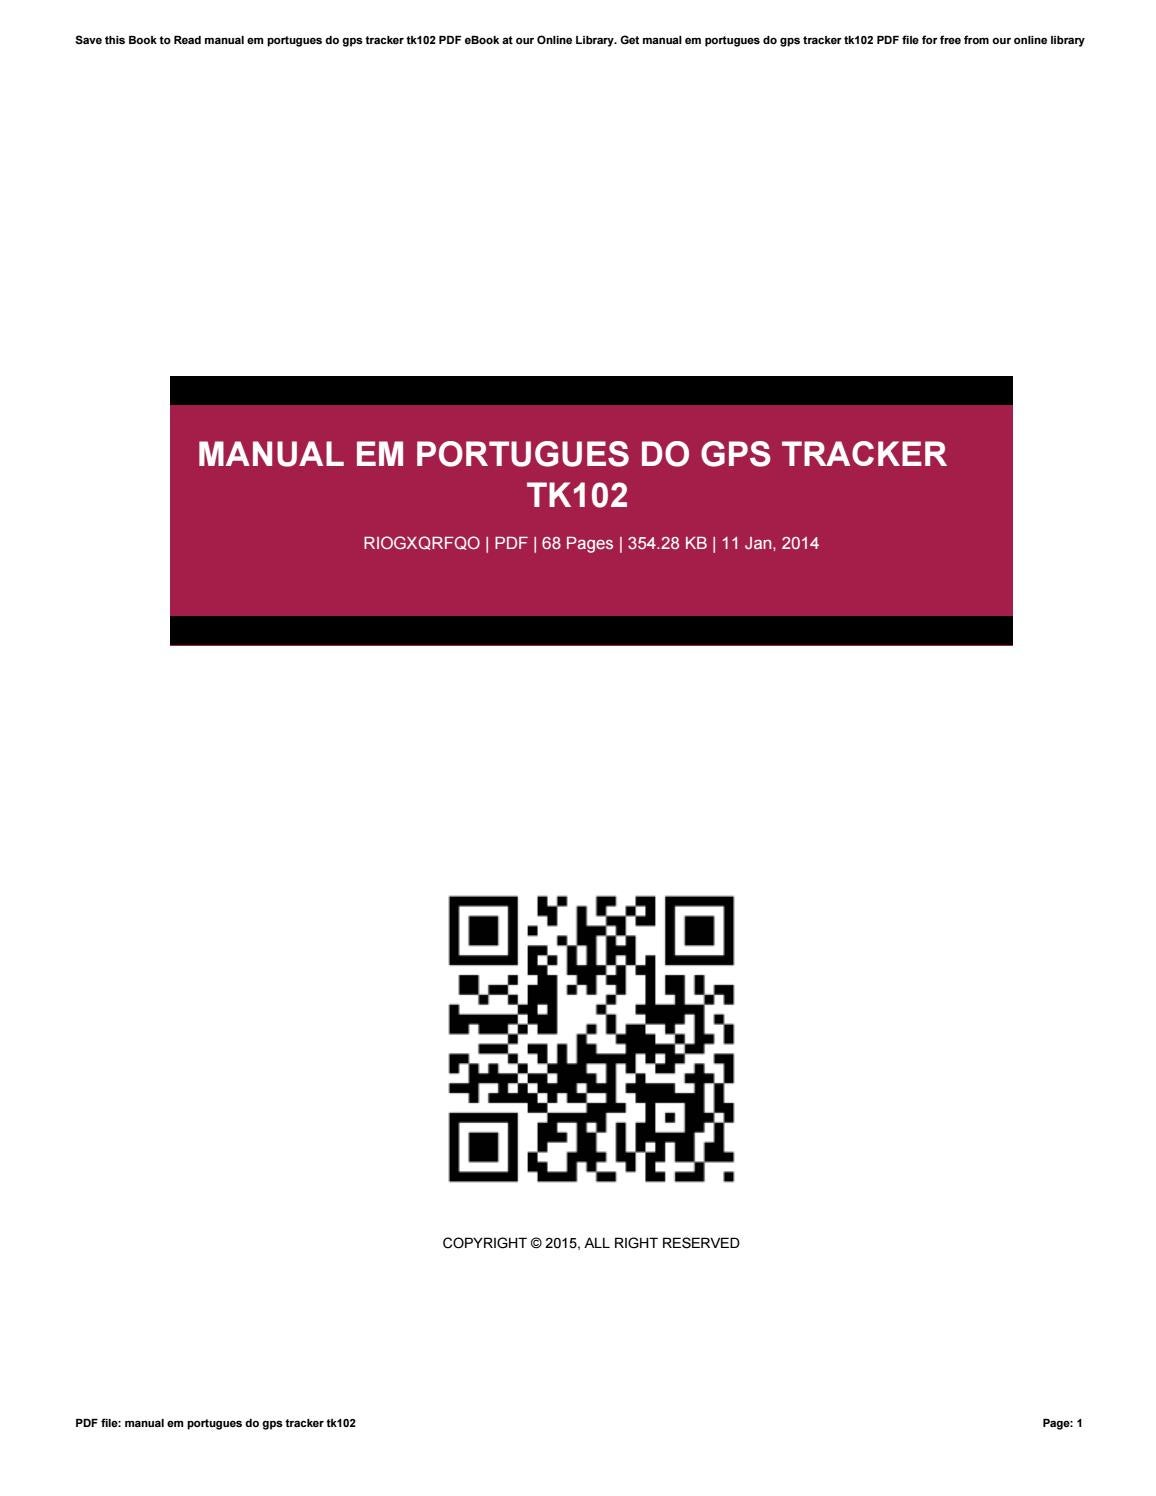 manual em portugues do gps tracker tk102 by scotto issuu rh issuu com manual portugues gps tracker tk102 manual em portugues rastreador tk102b